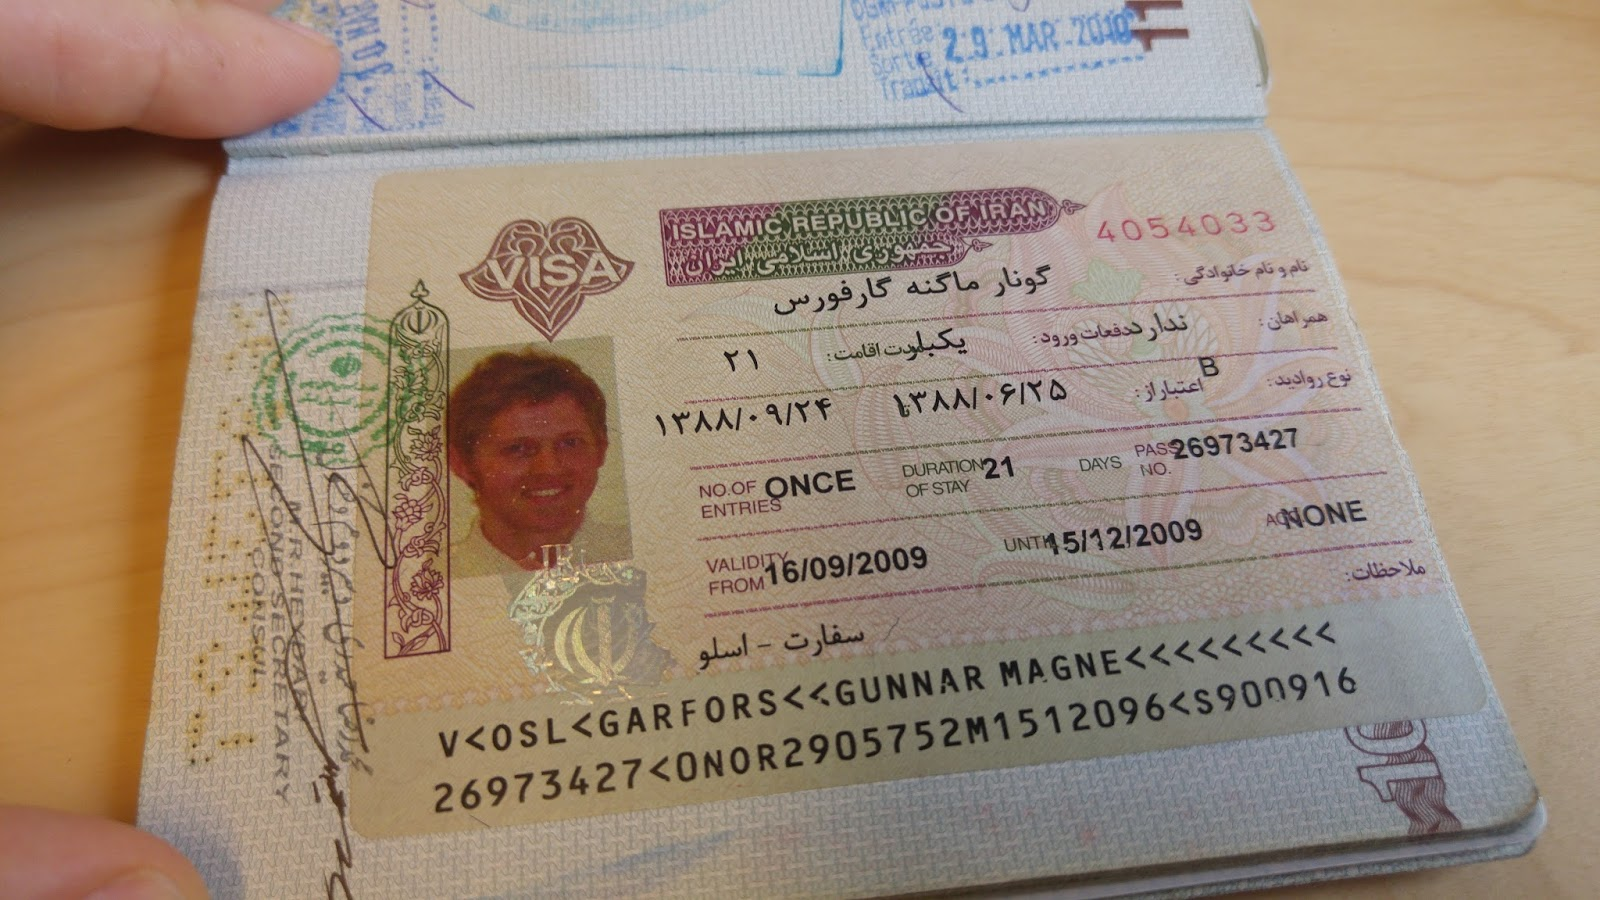 Worlds top 50 country passport stamps the garfors globe my second favourite visa of all times that guy may look like me but it is actually my brother ystein i had run out of passport photos he hadnt thecheapjerseys Images